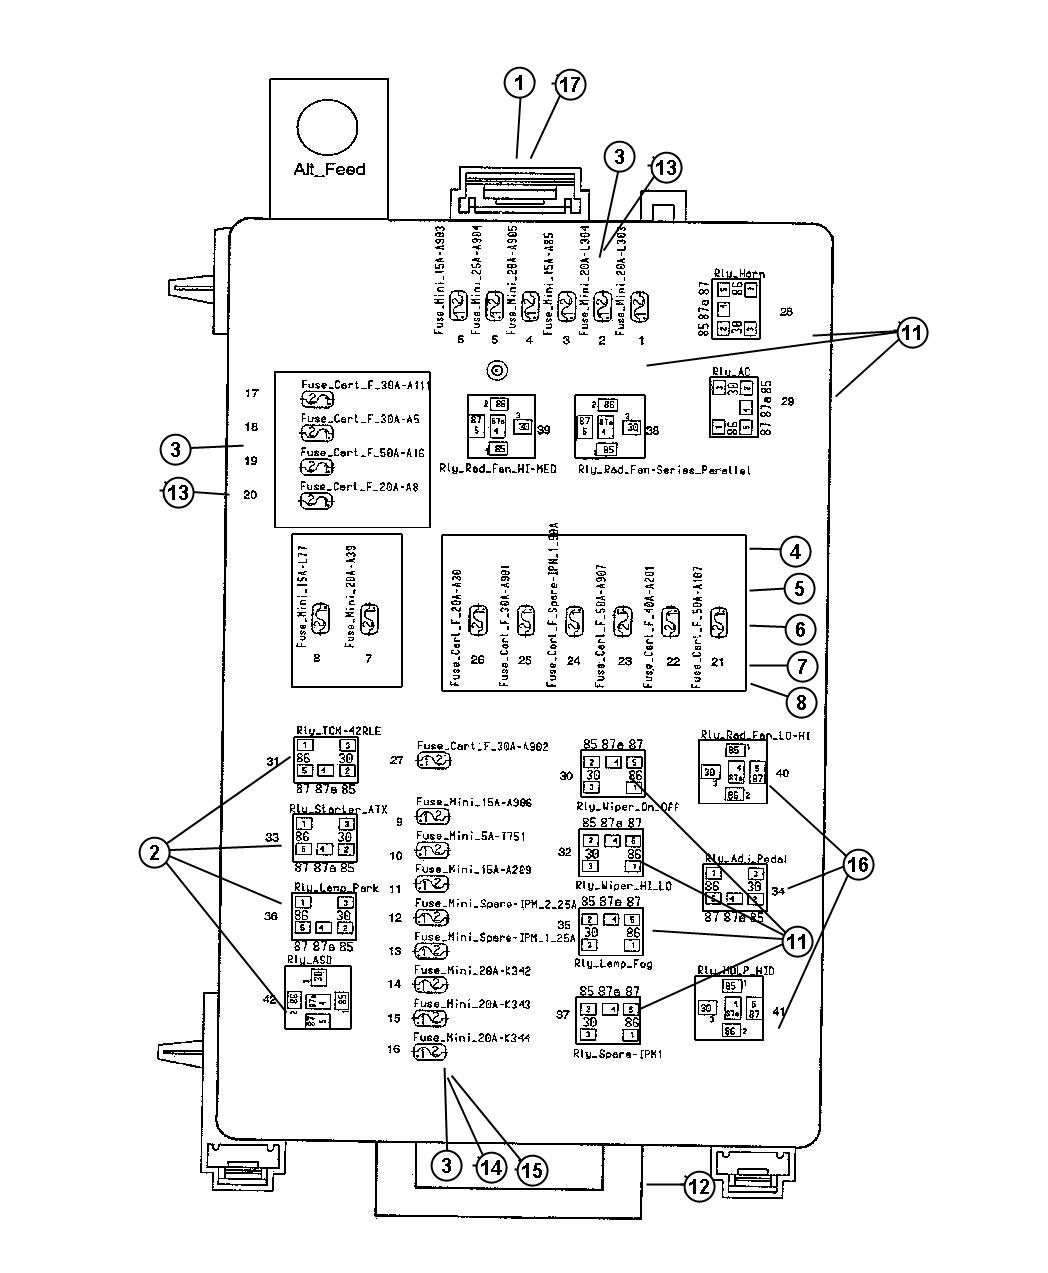 wiring diagram 2004 dodge 2500 wiring discover your wiring 2006 chrysler 300 cooling fan relay location